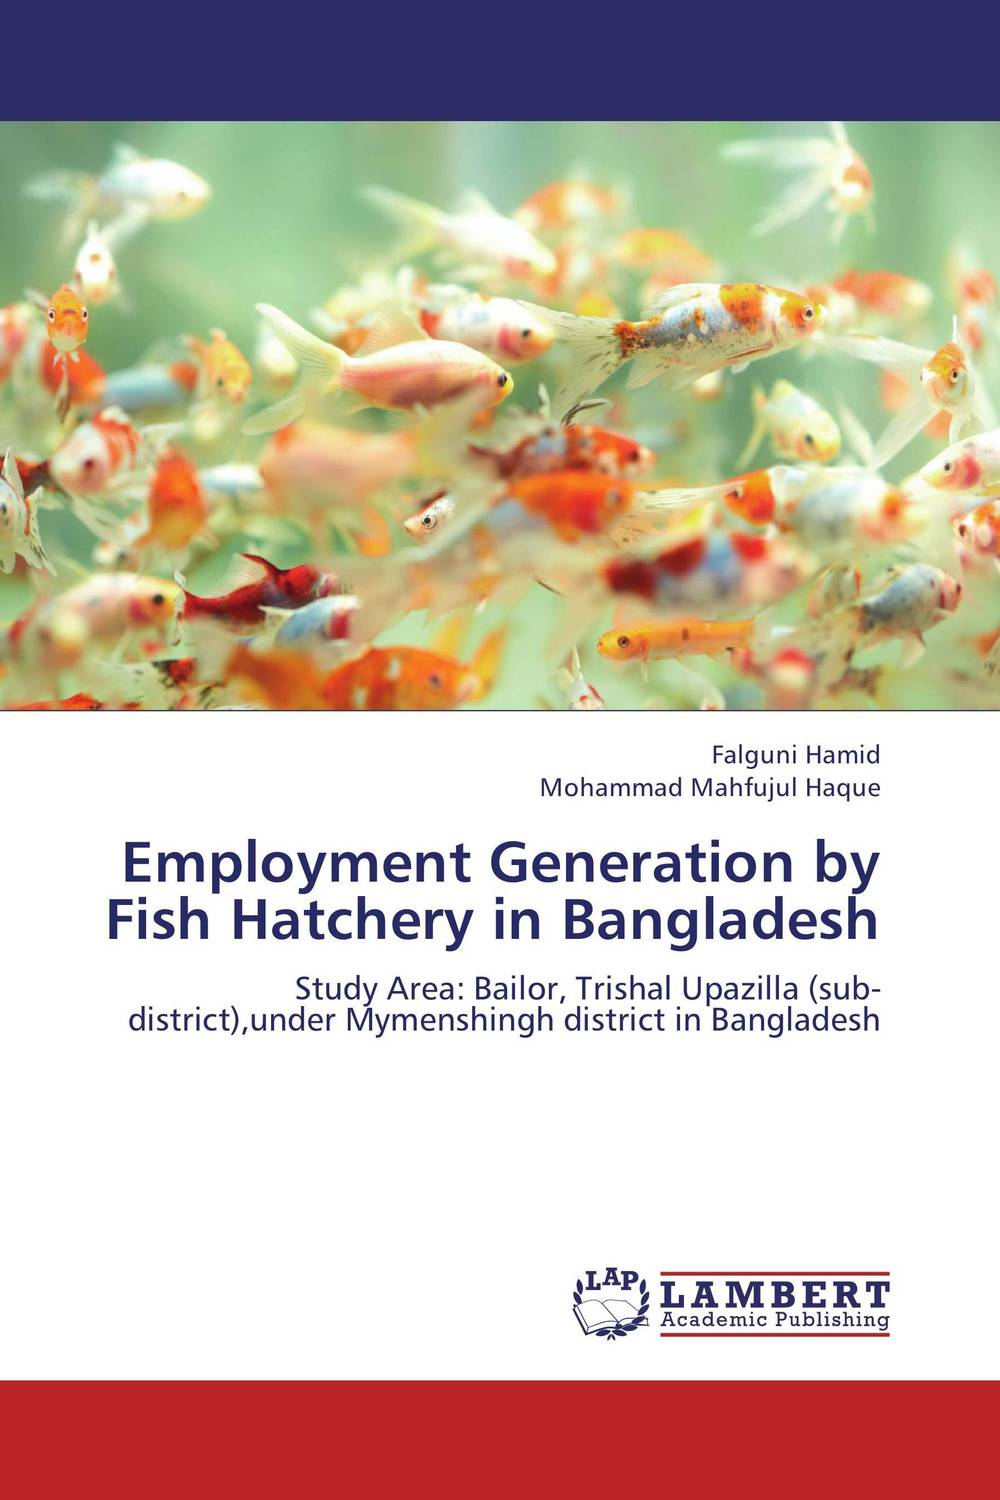 Employment Generation by Fish Hatchery in Bangladesh linda mcdowell working lives gender migration and employment in britain 1945 2007